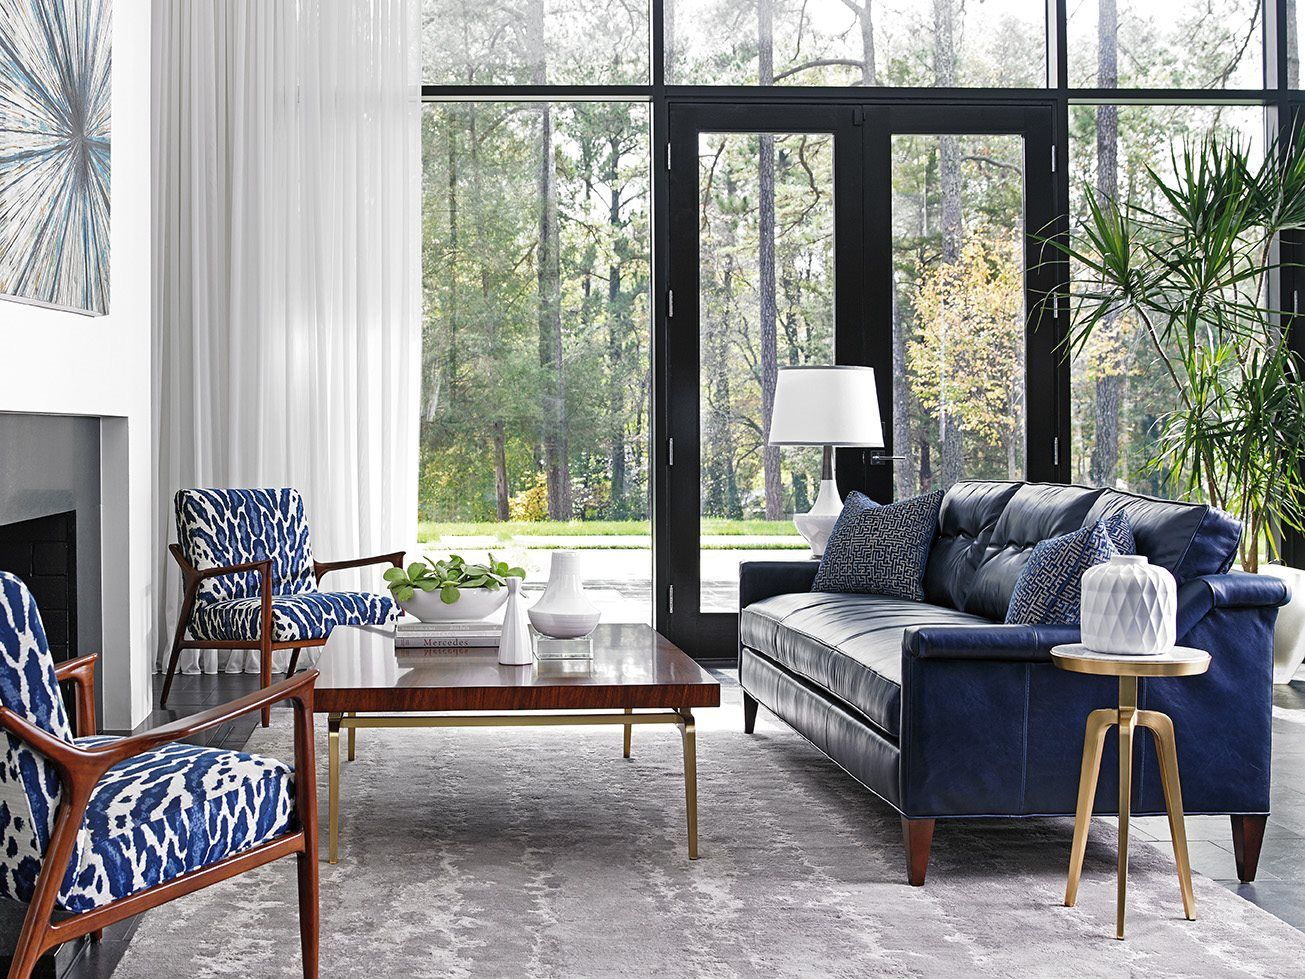 Blue Leather Living Room Sets With Brown Furniture Decorating Ideas Lexington Take Five Sofa Set Table Dream Home Idea For Sale Near Me